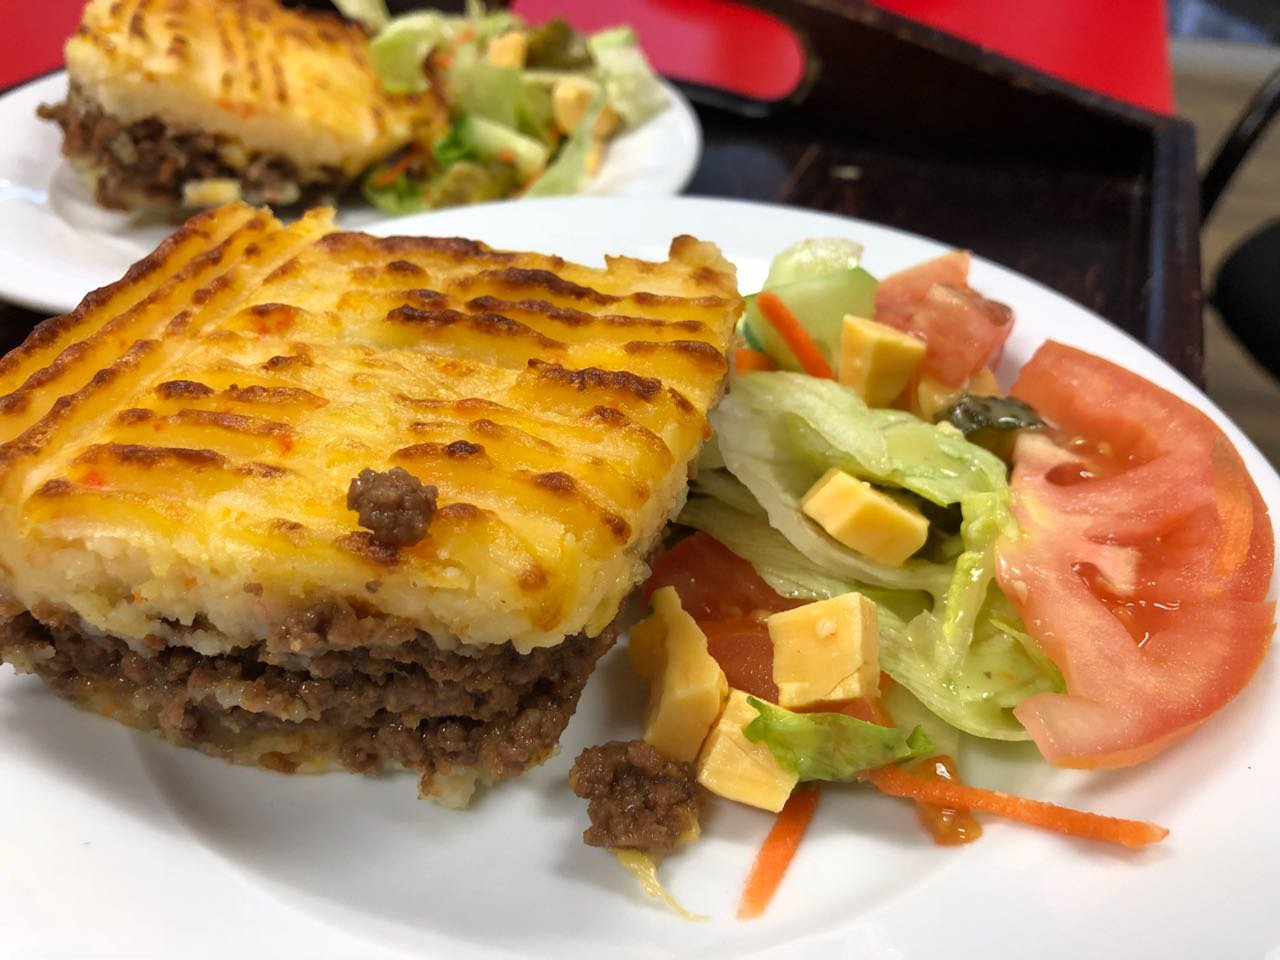 kathy's cottage pie